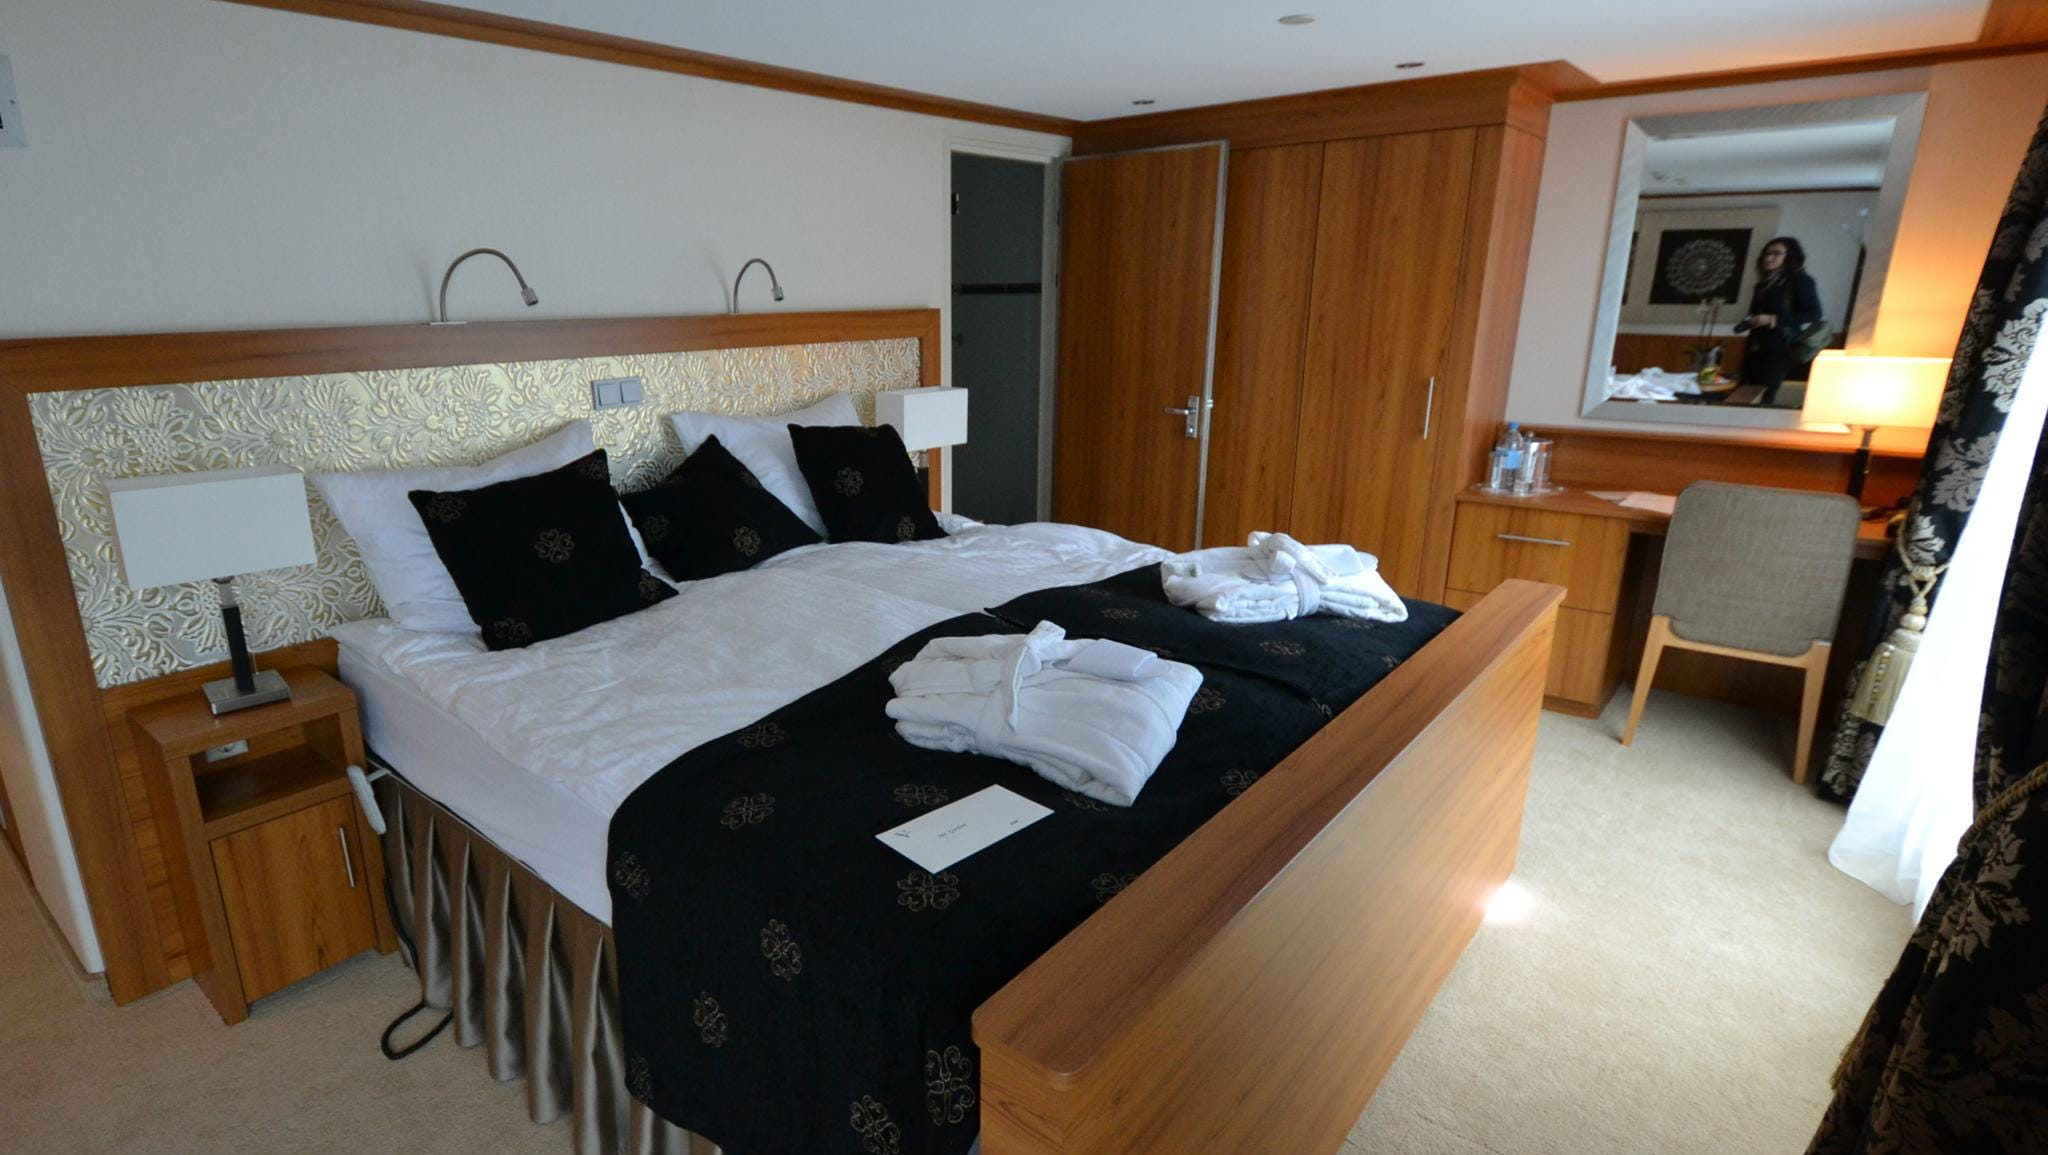 In addition to the 12 Deluxe Suites, the River Discovery II has a single Owner's Suite measuring 330 square feet.